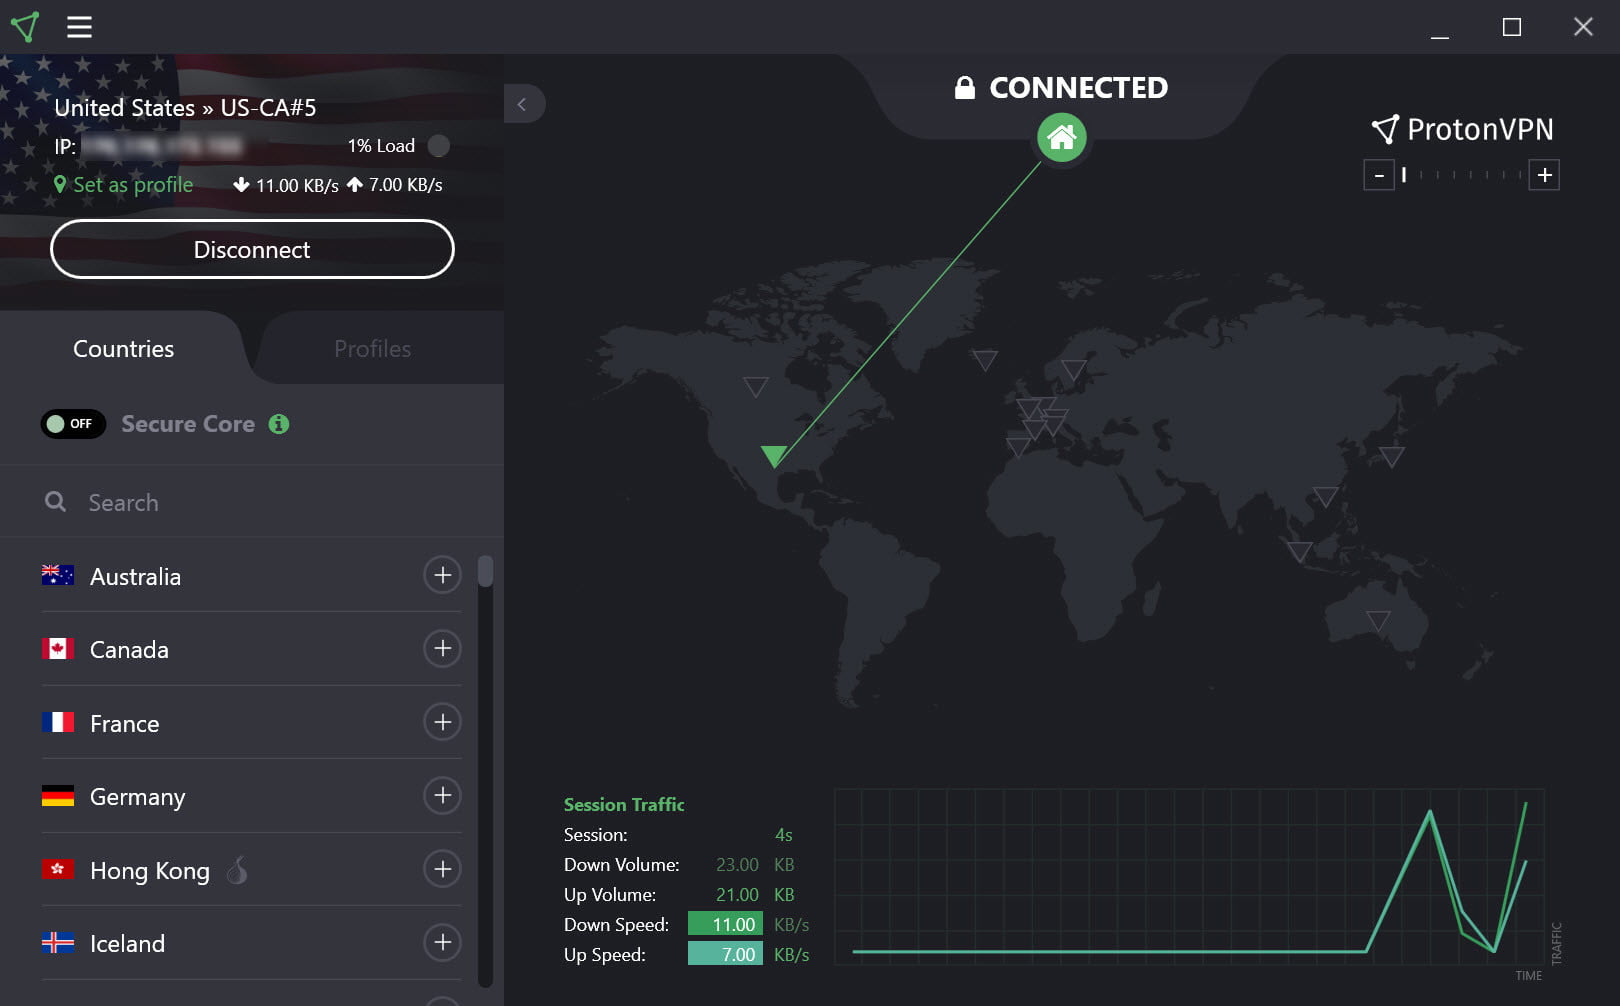 How can I find a good VPN service